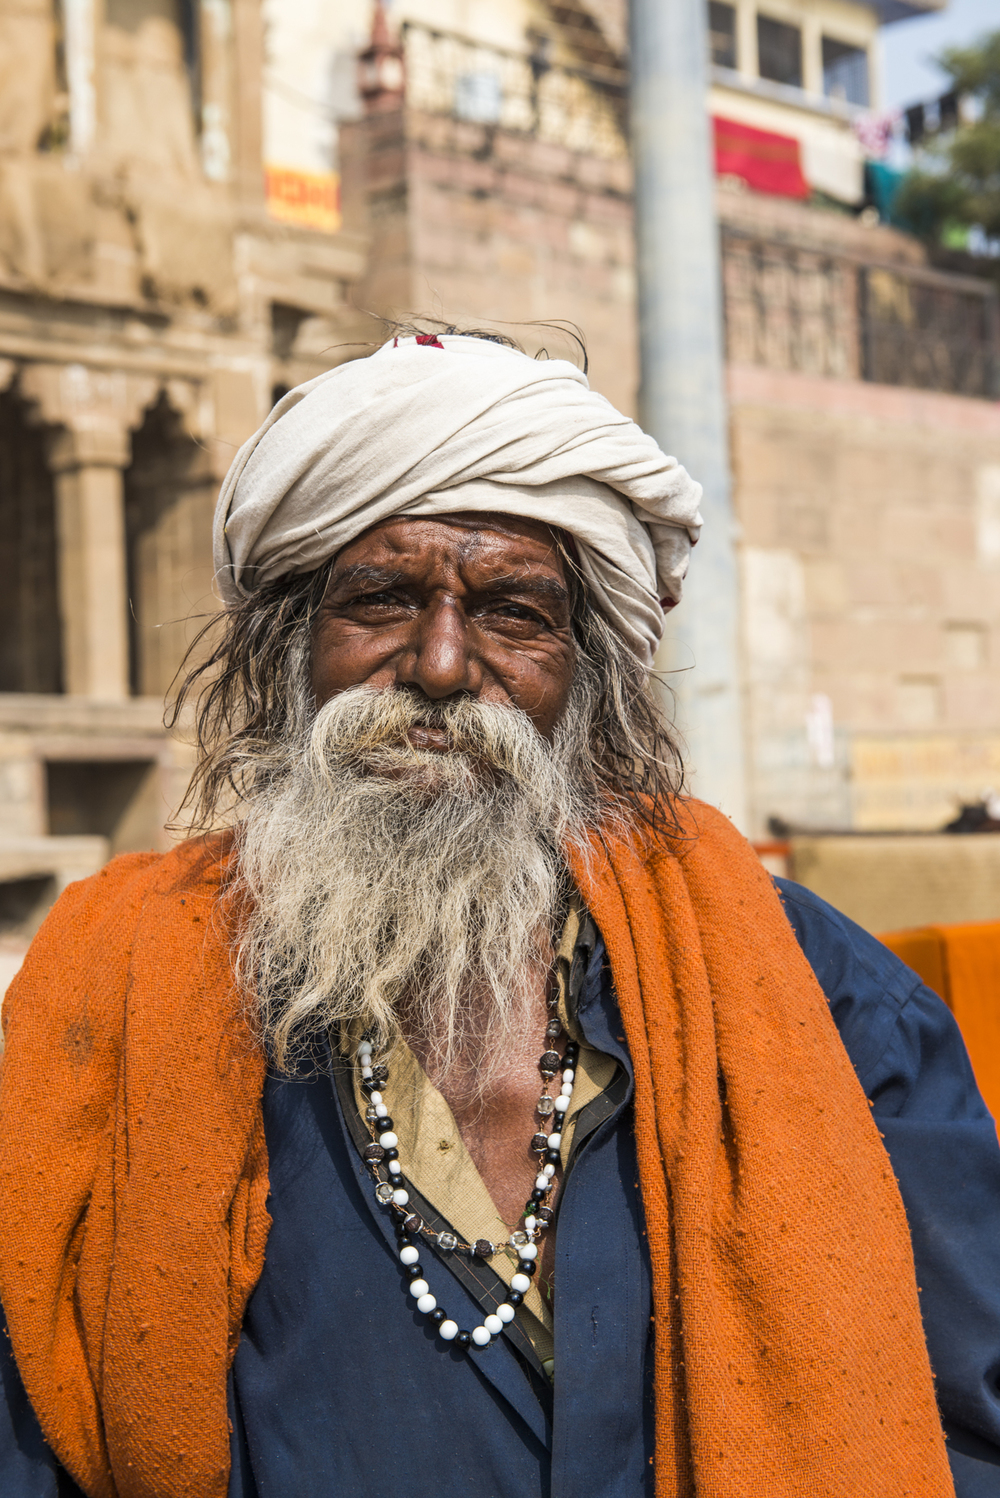 The holy city of Varanasi is filled with highly religious and spiritual people.